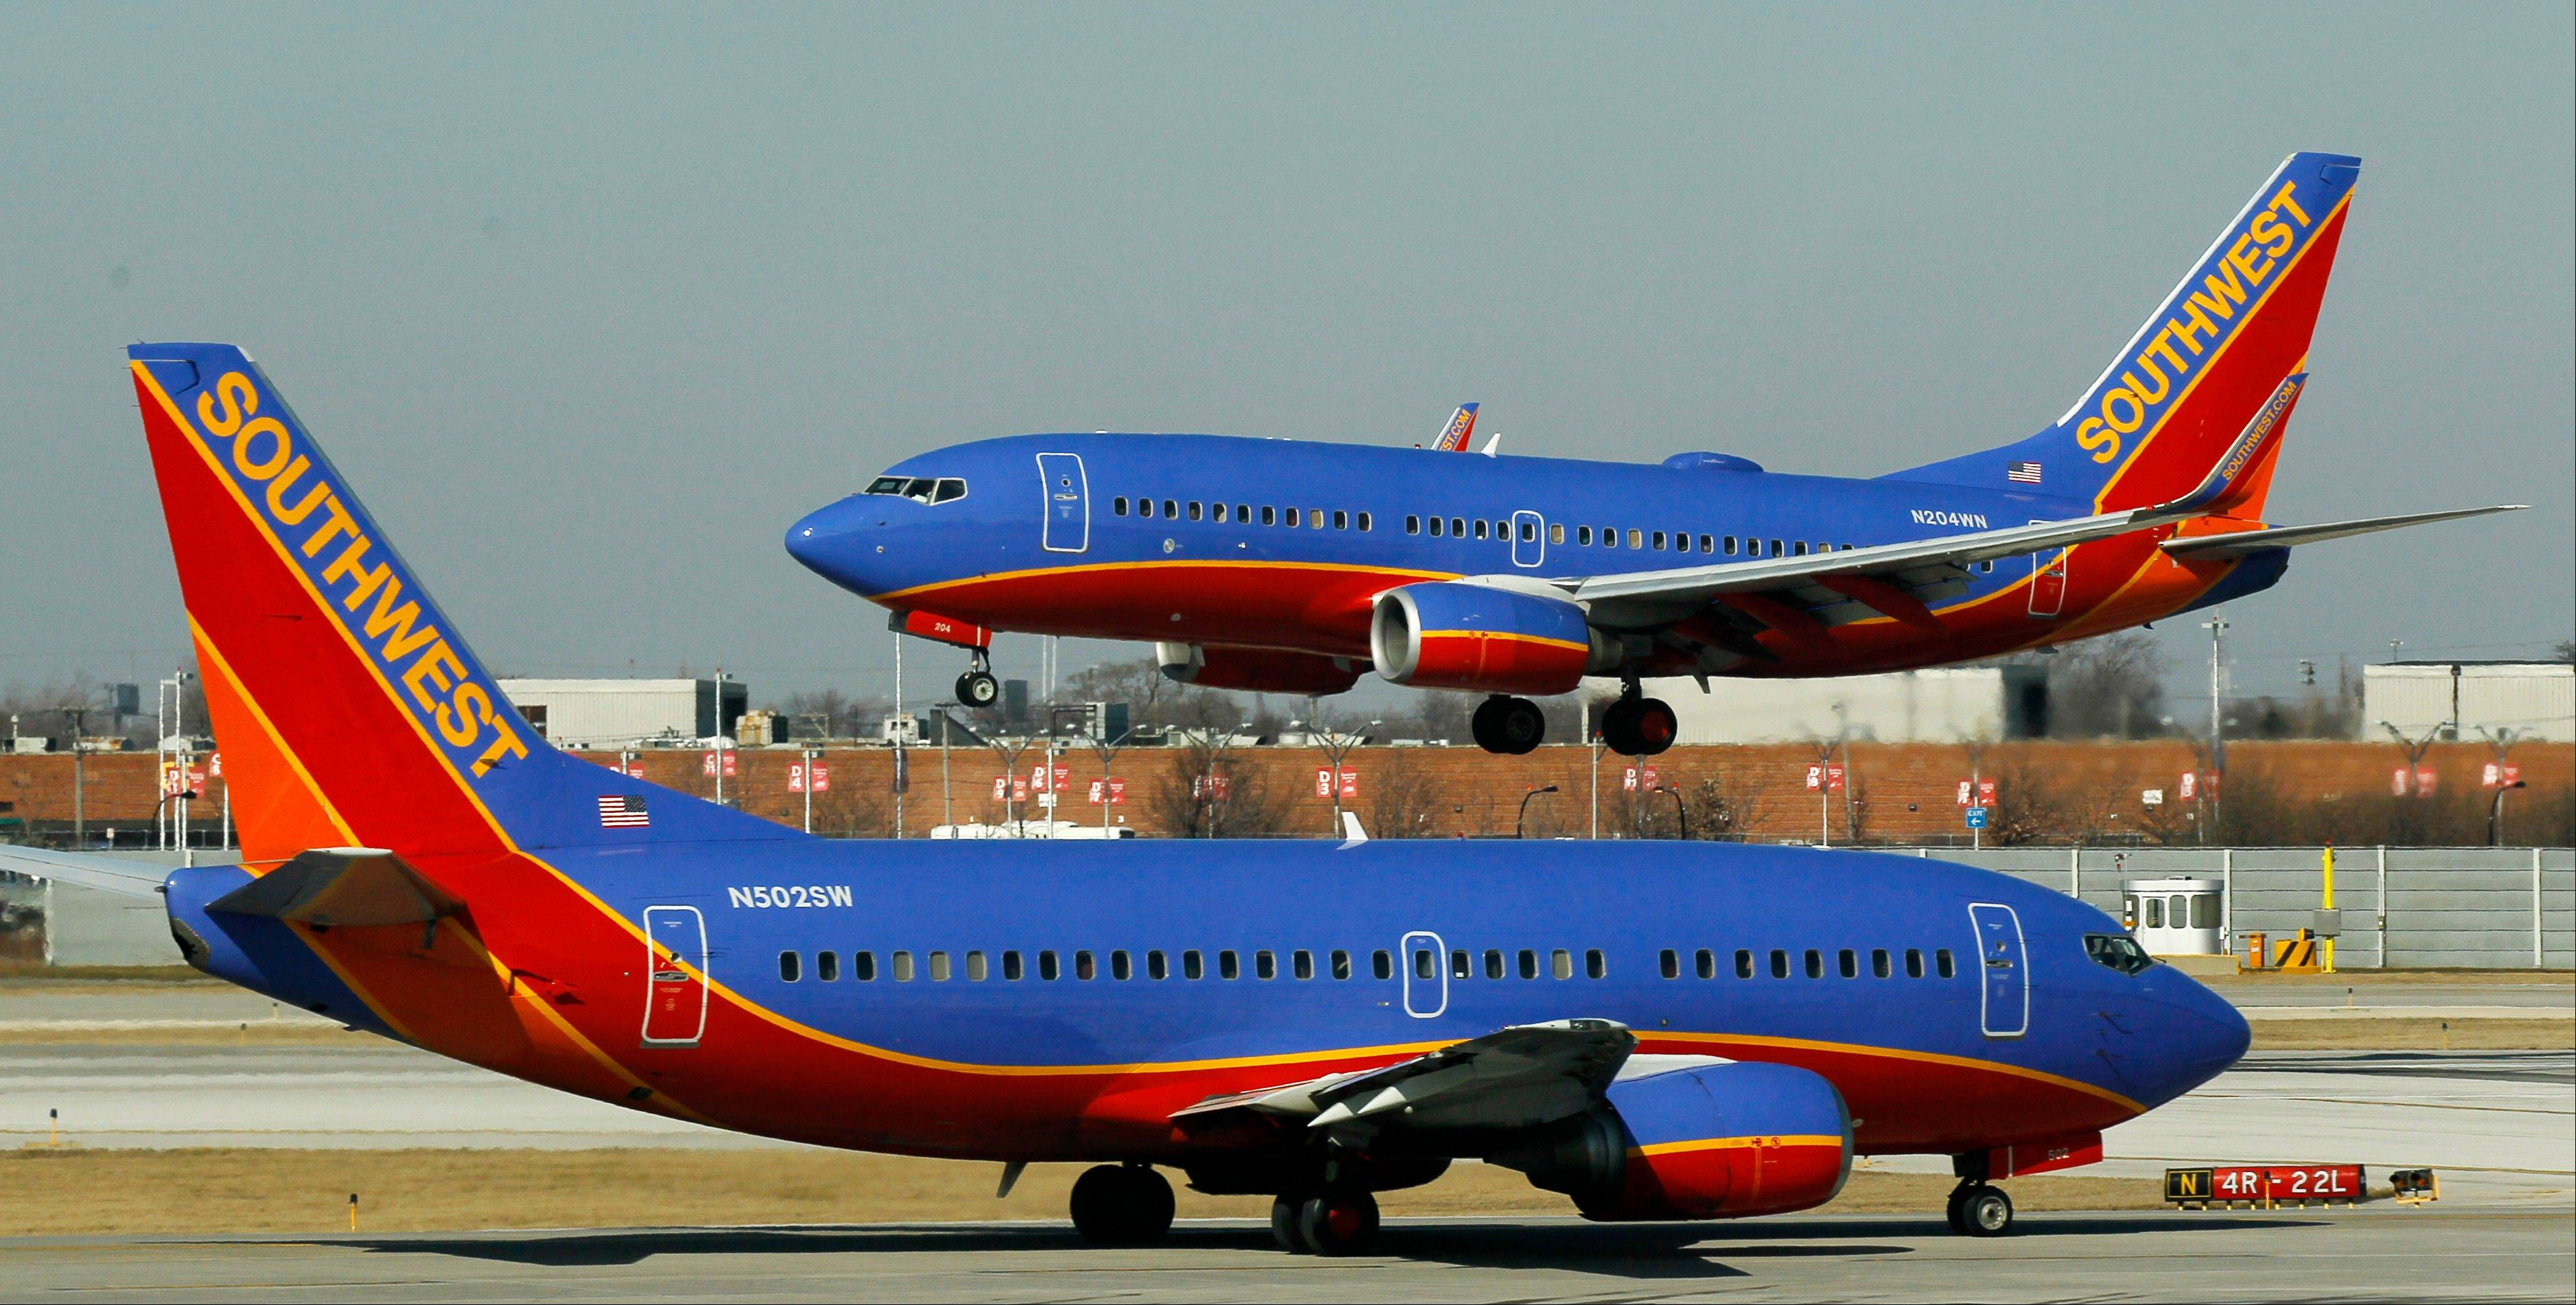 With fuel costs rising once again, airlines are expected to start a round of fare hikes.